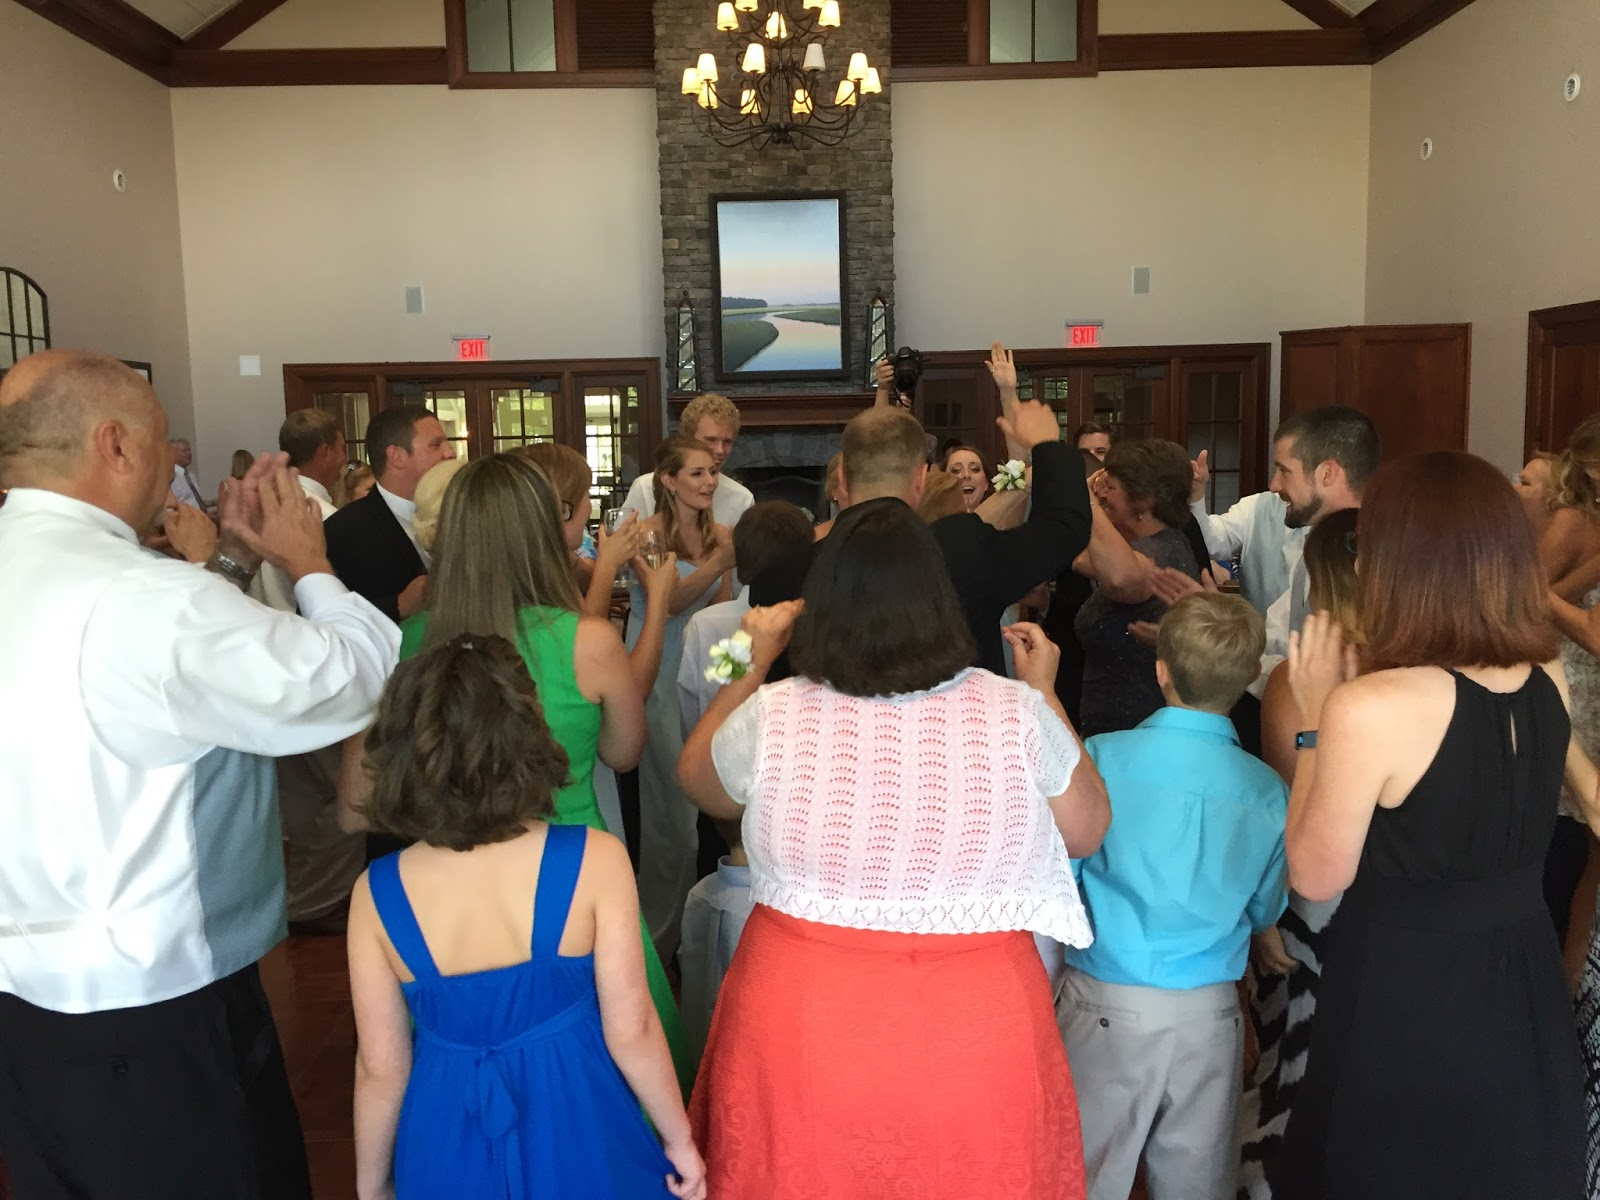 Dj Randy B S Weddings And Events Maddie Nathan S Epic 4th Of July